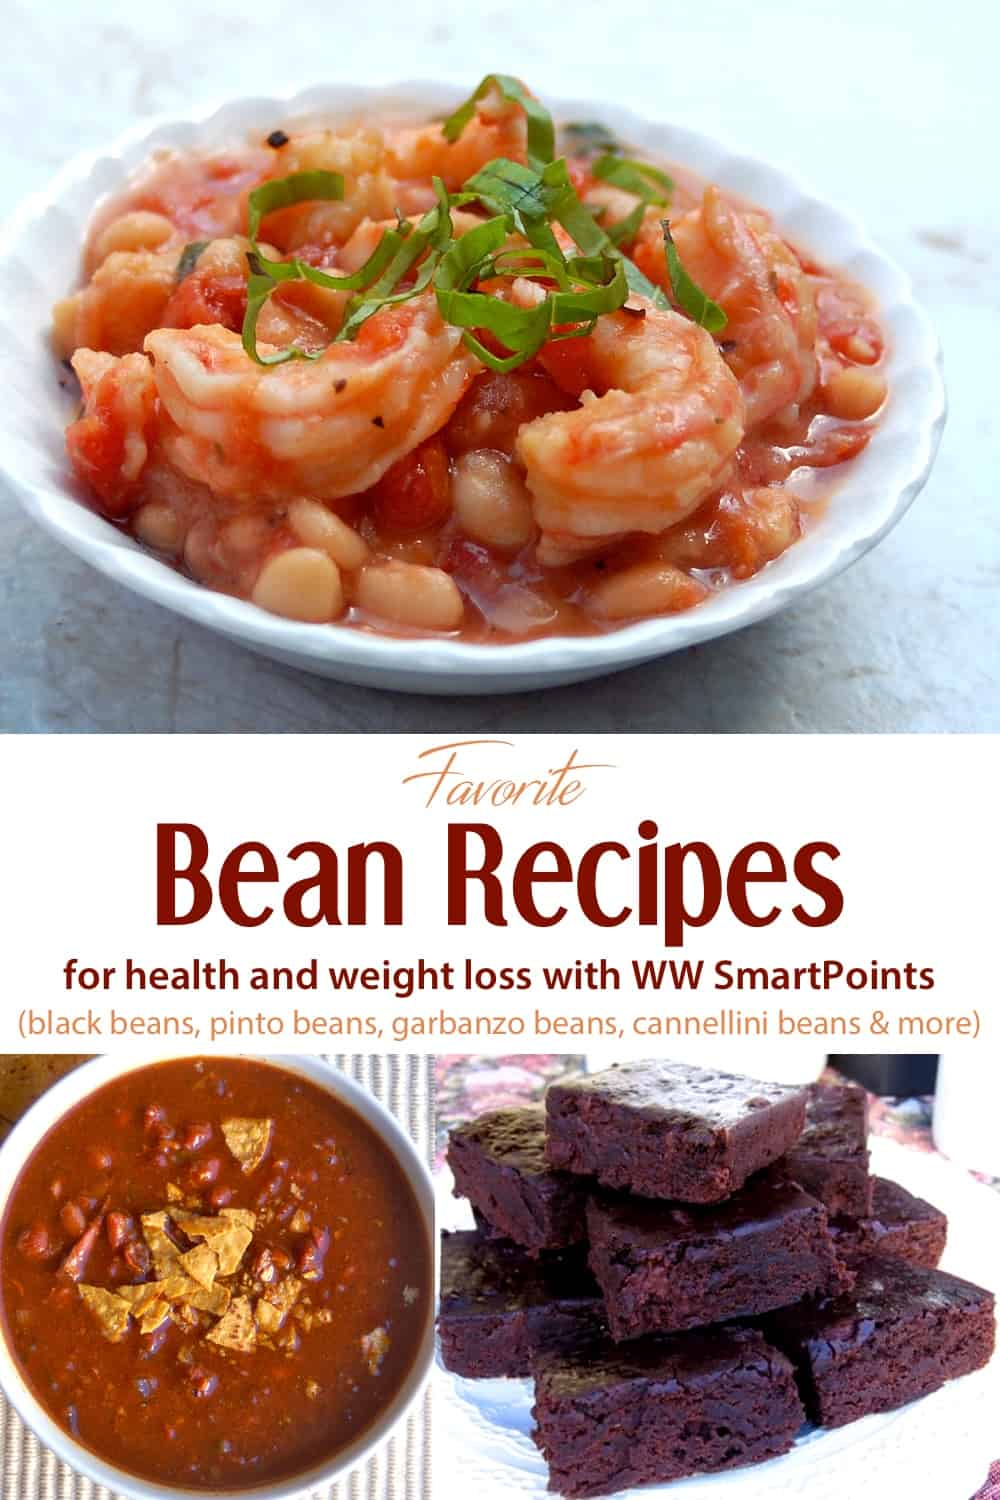 Food collage: shrimp with white beans in white bowl, plate filled with black bean brownies, and bowl of baked beans soup.